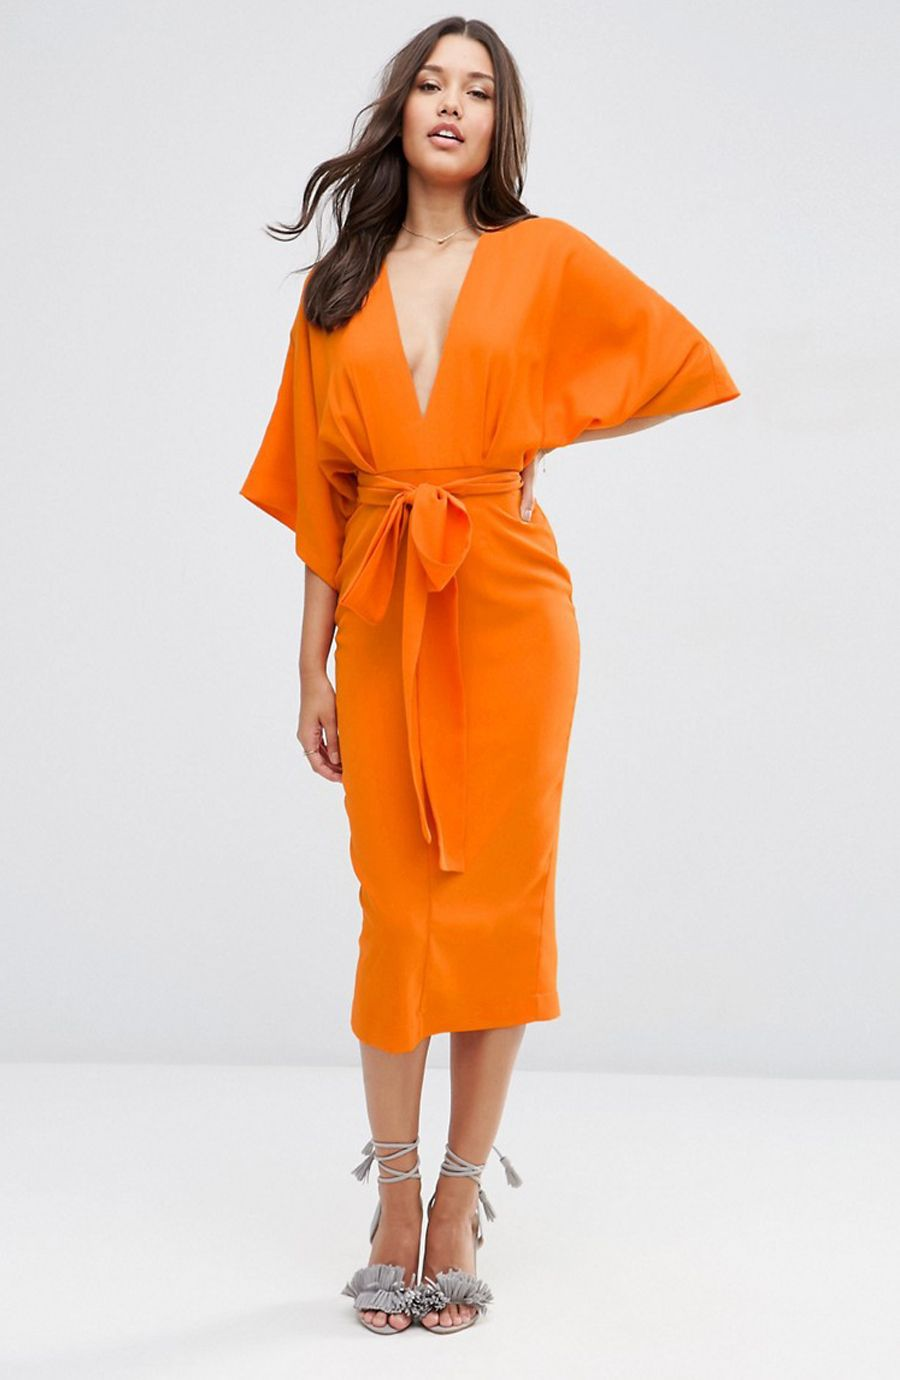 Which cocktail dress drink pairing is your dream match asos asos kimono deep plunge midi dress httpstylemepretty ombrellifo Choice Image